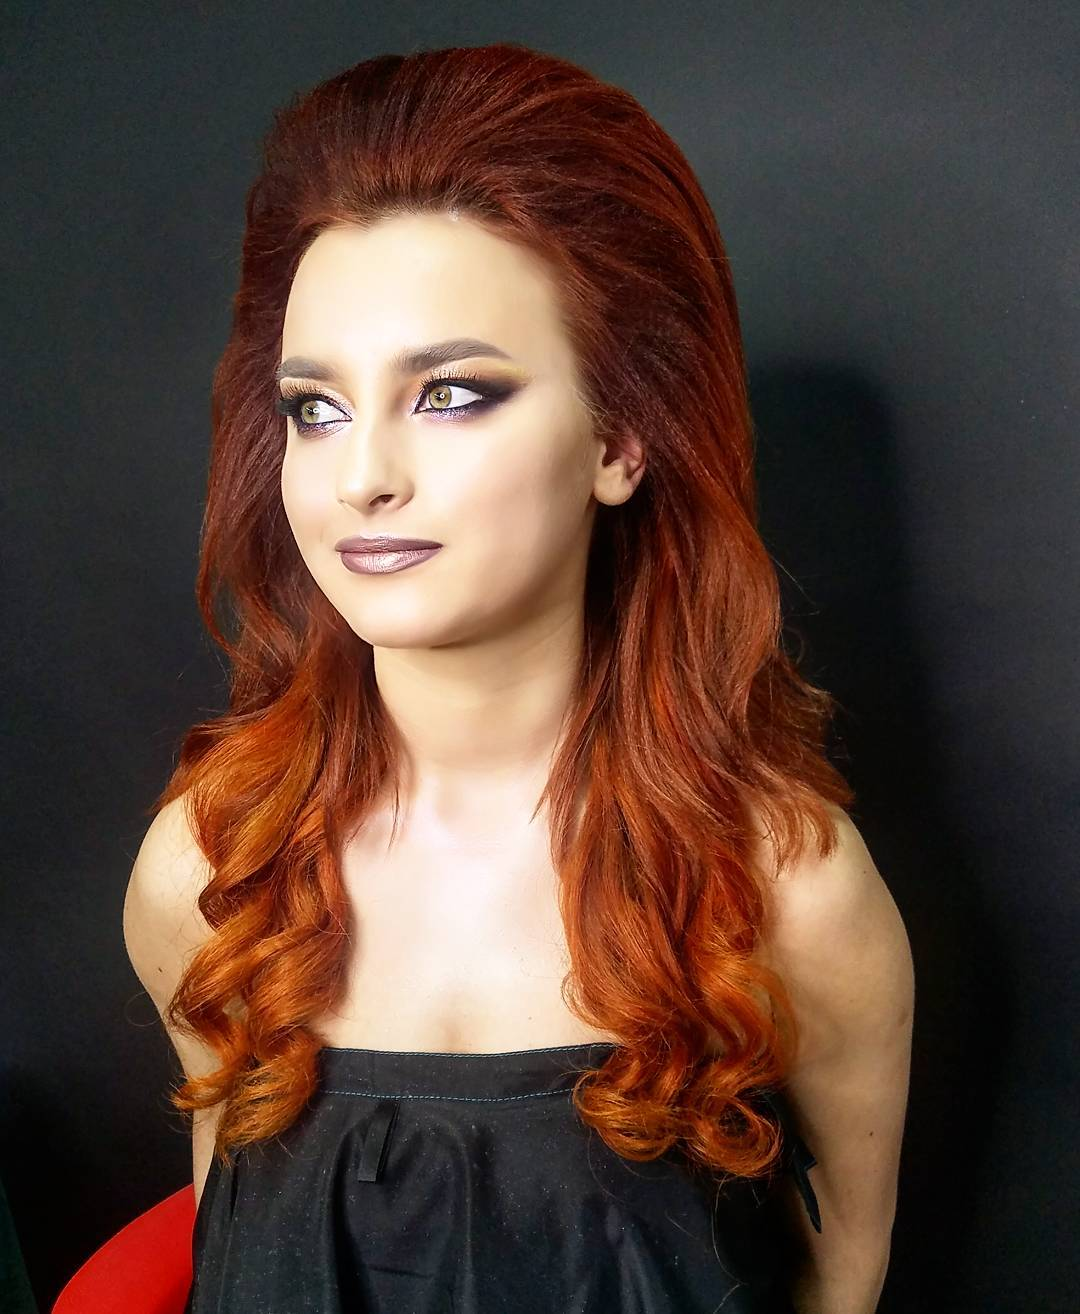 Wavy Layered Cut with Voluminous Backcombed Top and Vibrant Red Ombre for Date Nights or Prom Long Hairstyle